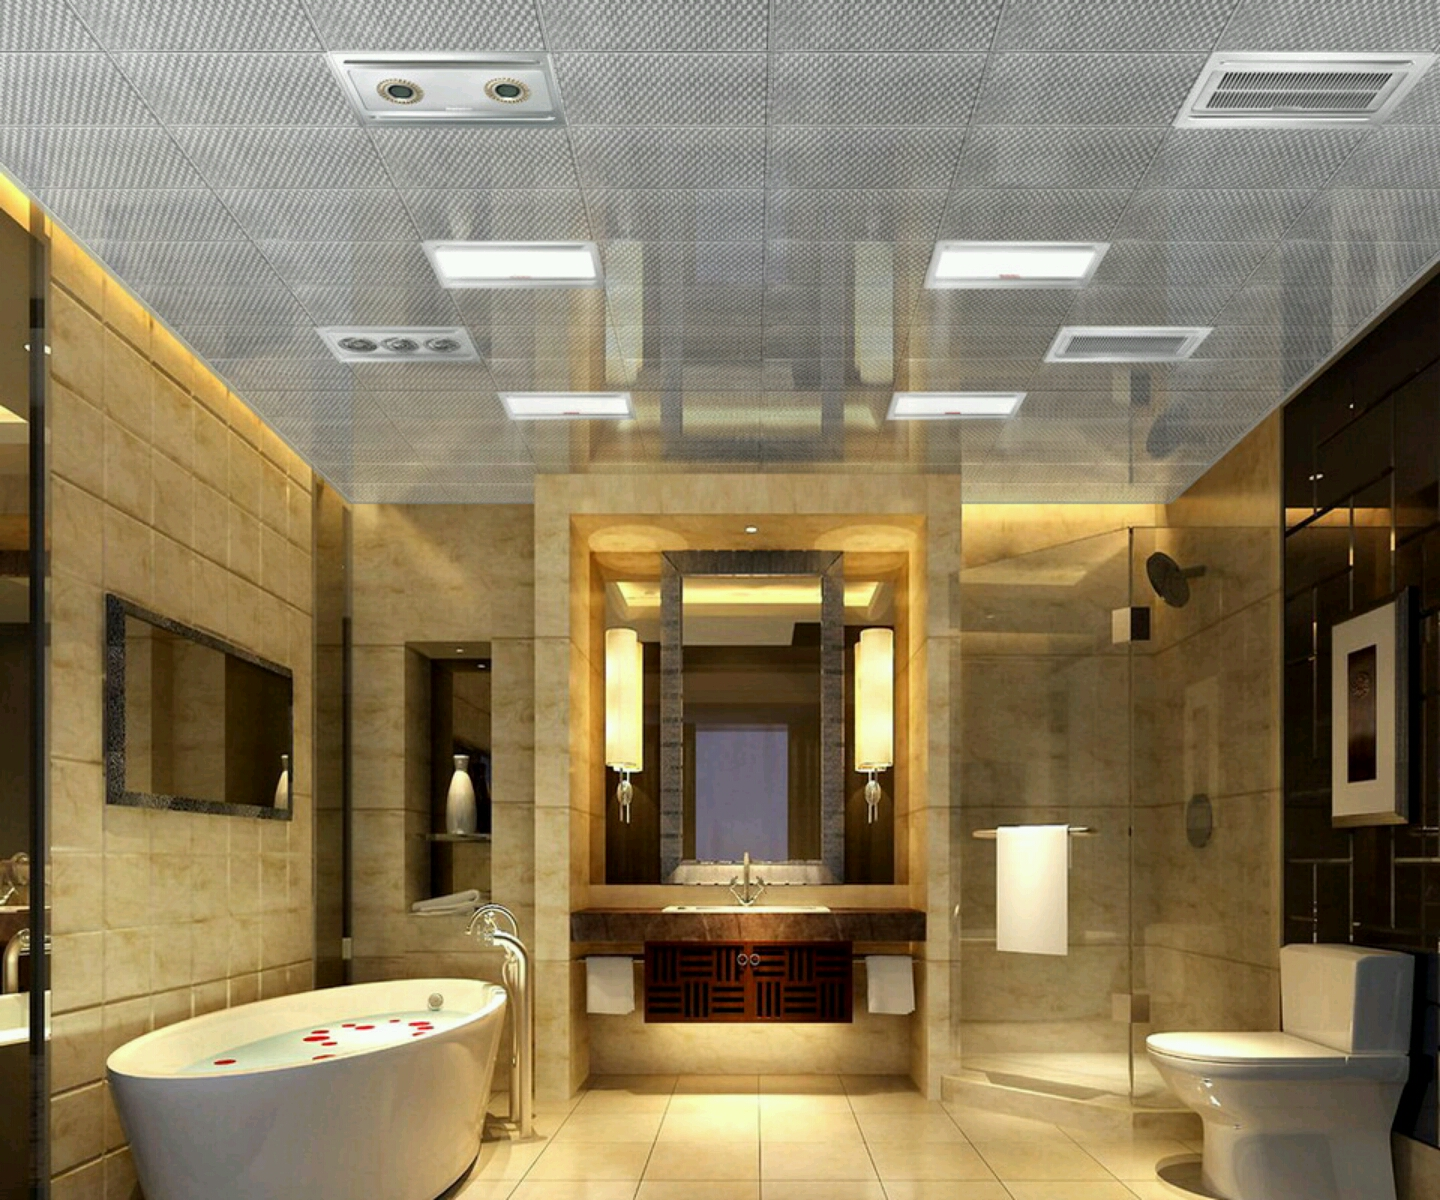 Bathroom Designs Images 30 Beautiful Pictures And Ideas High End Bathroom Tile Designs